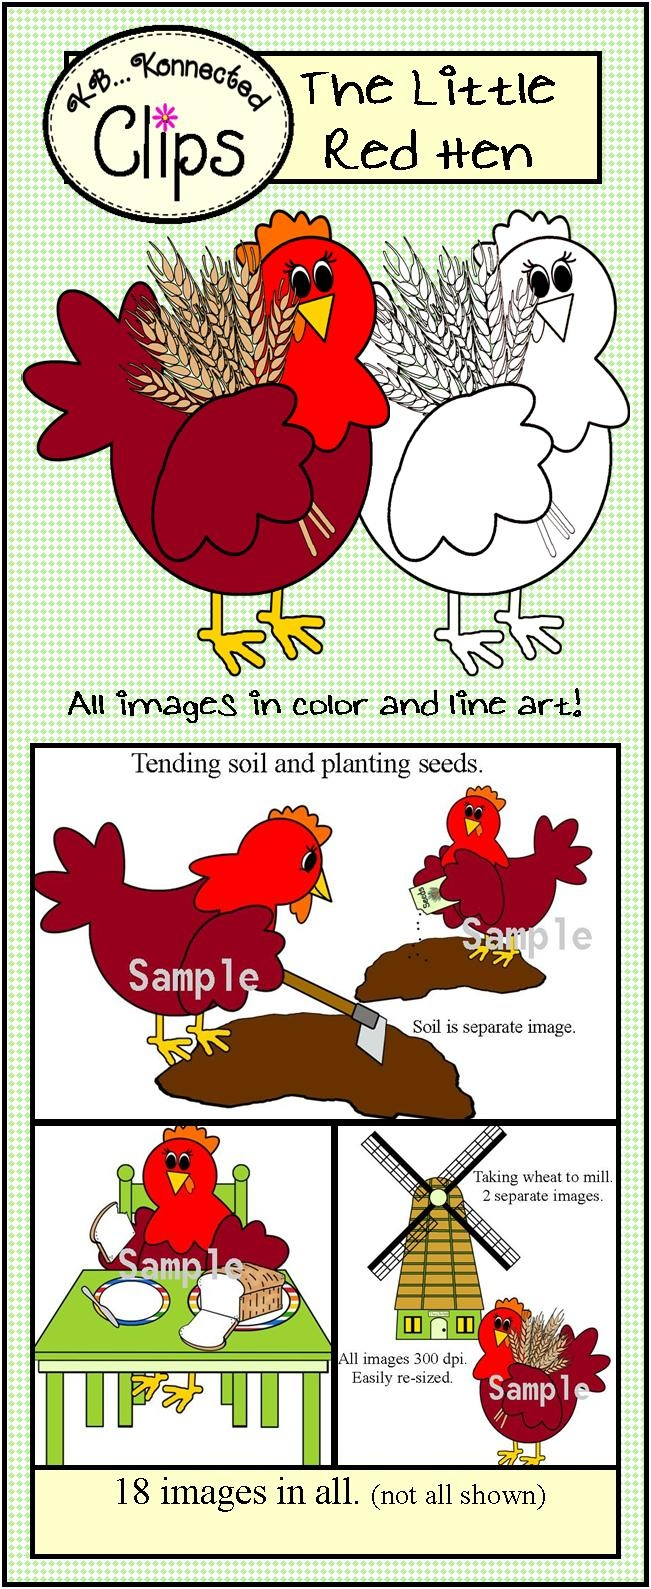 17 Best images about The little red hen on Pinterest.